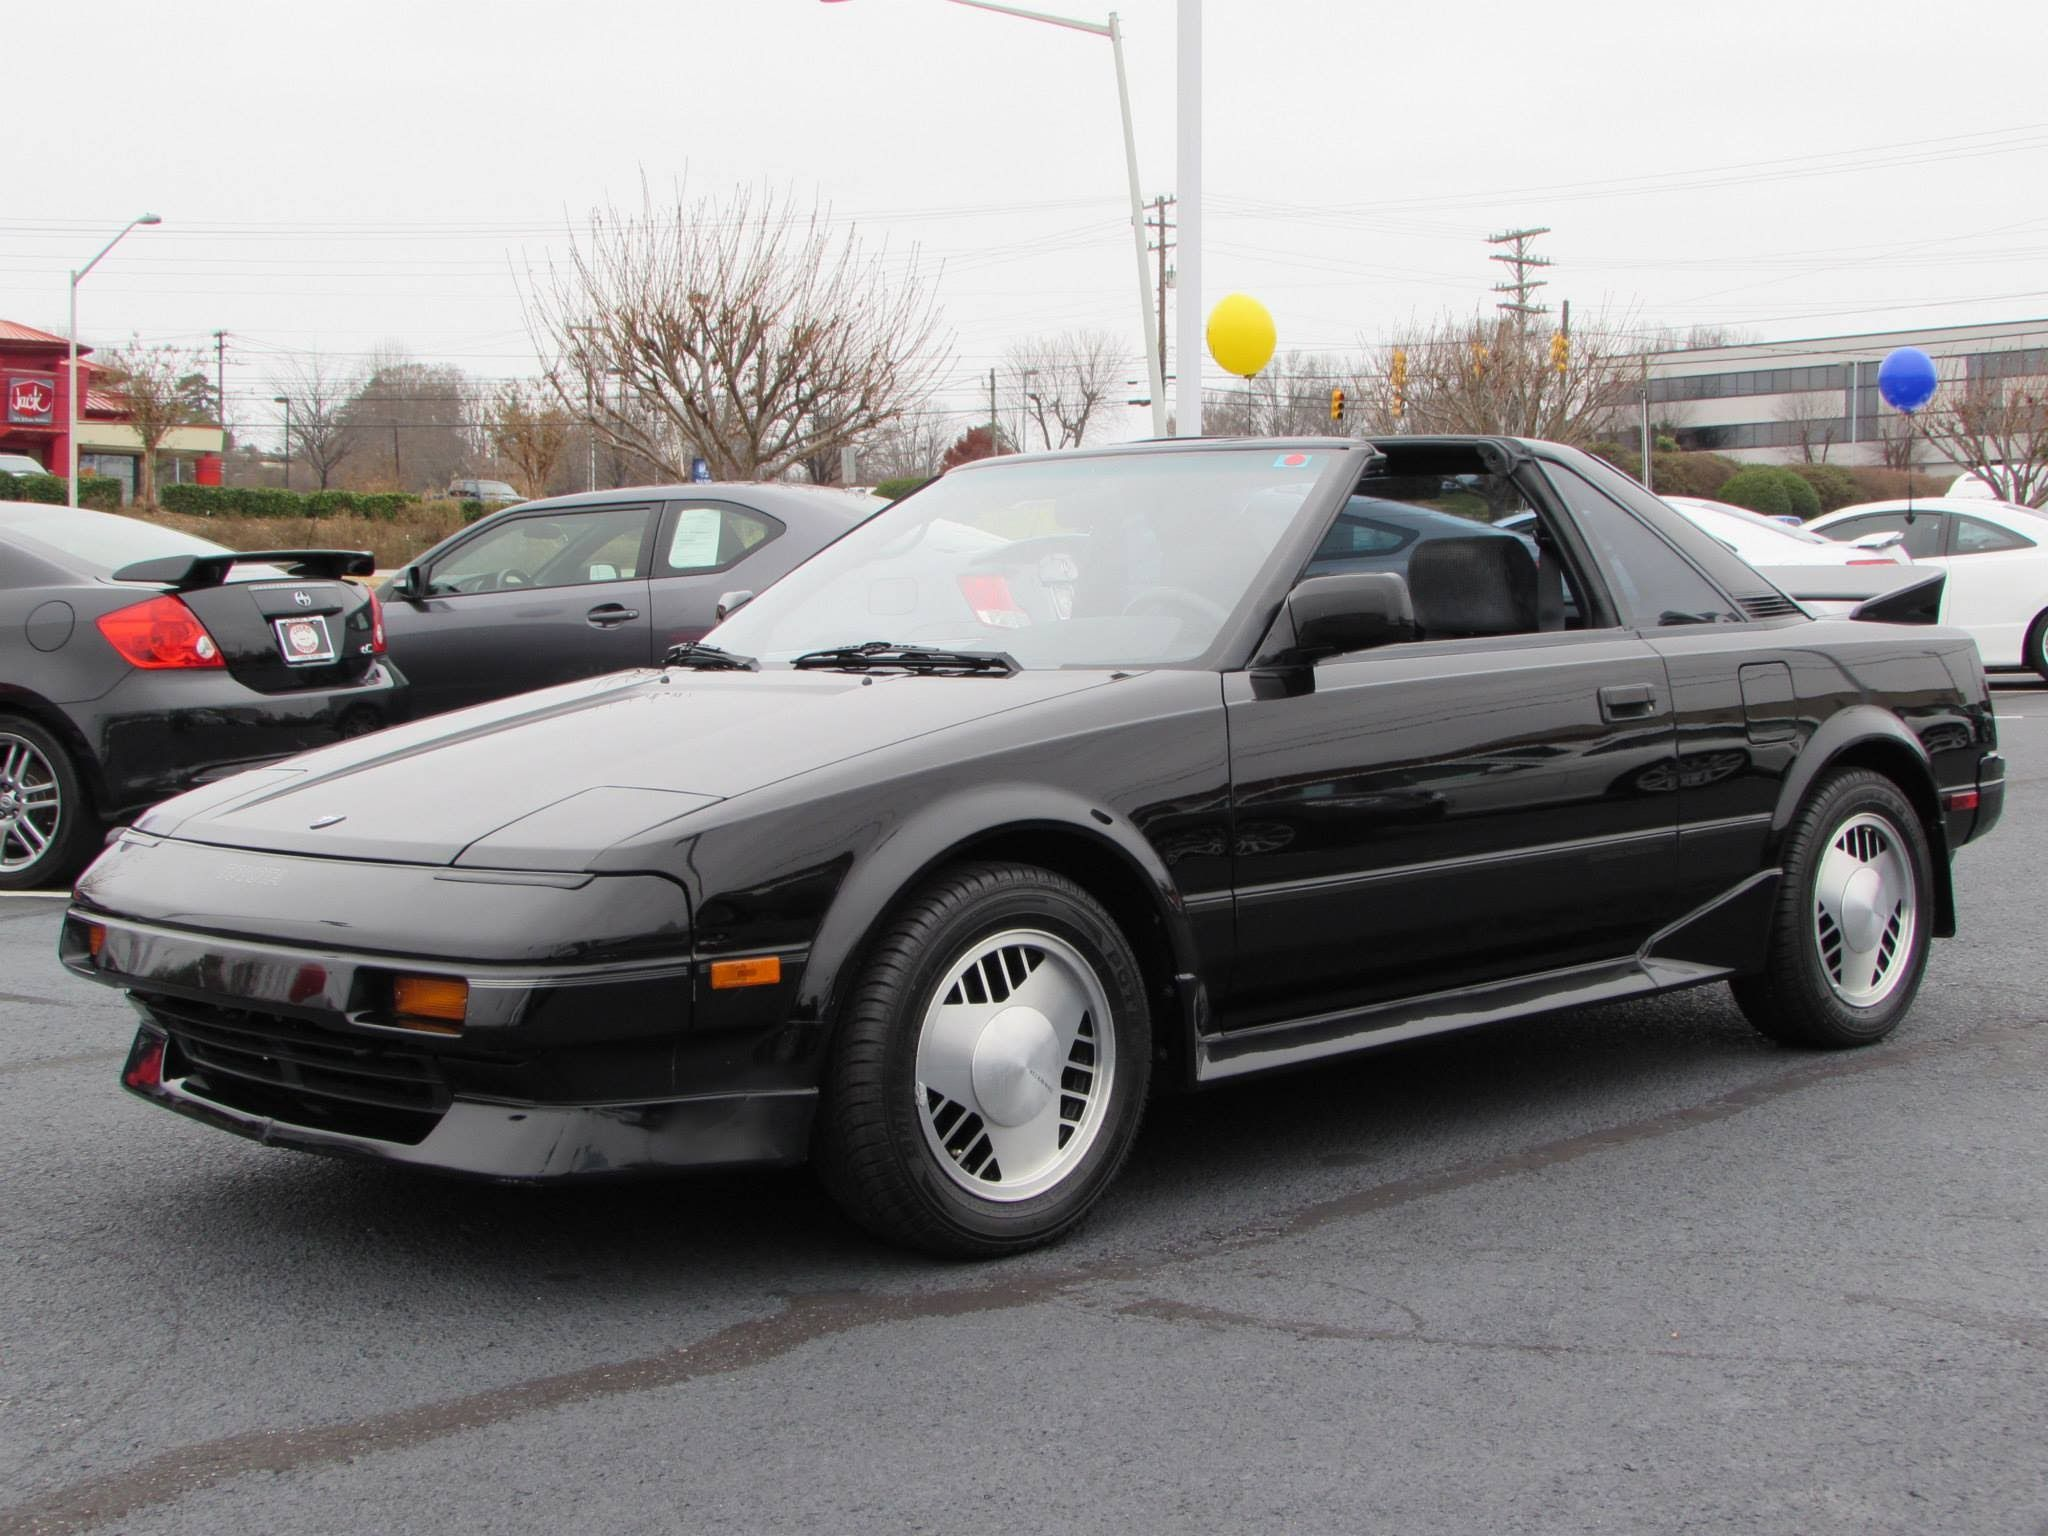 1988 Toyota MR2 Supercharged (MK1 AW11) Start Up, Exhaust, and In Depth